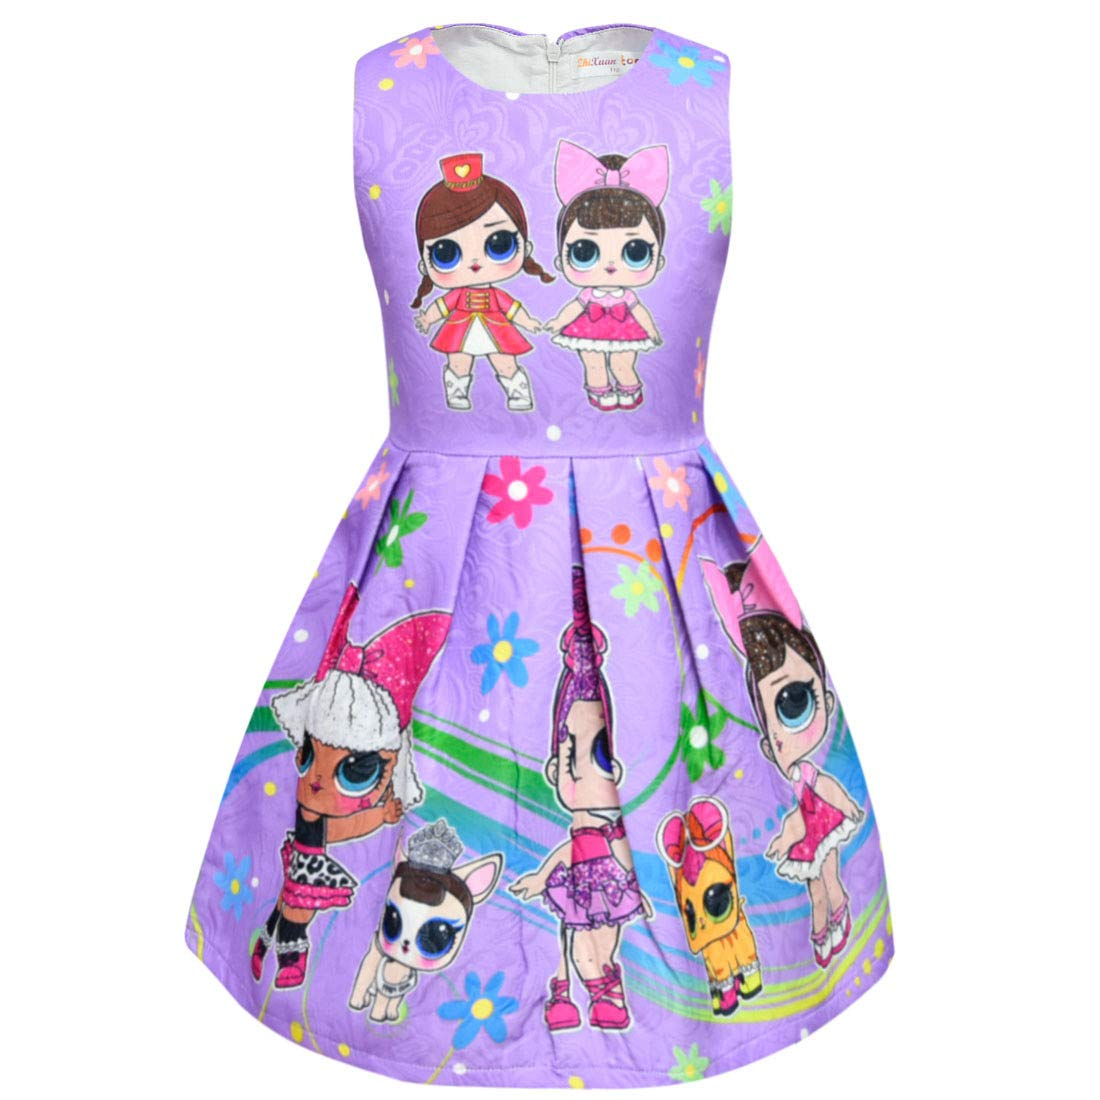 Dgfstm Baby Girls Lovely Dolls & Pets Evening Party Princess Sleeveless Dresses